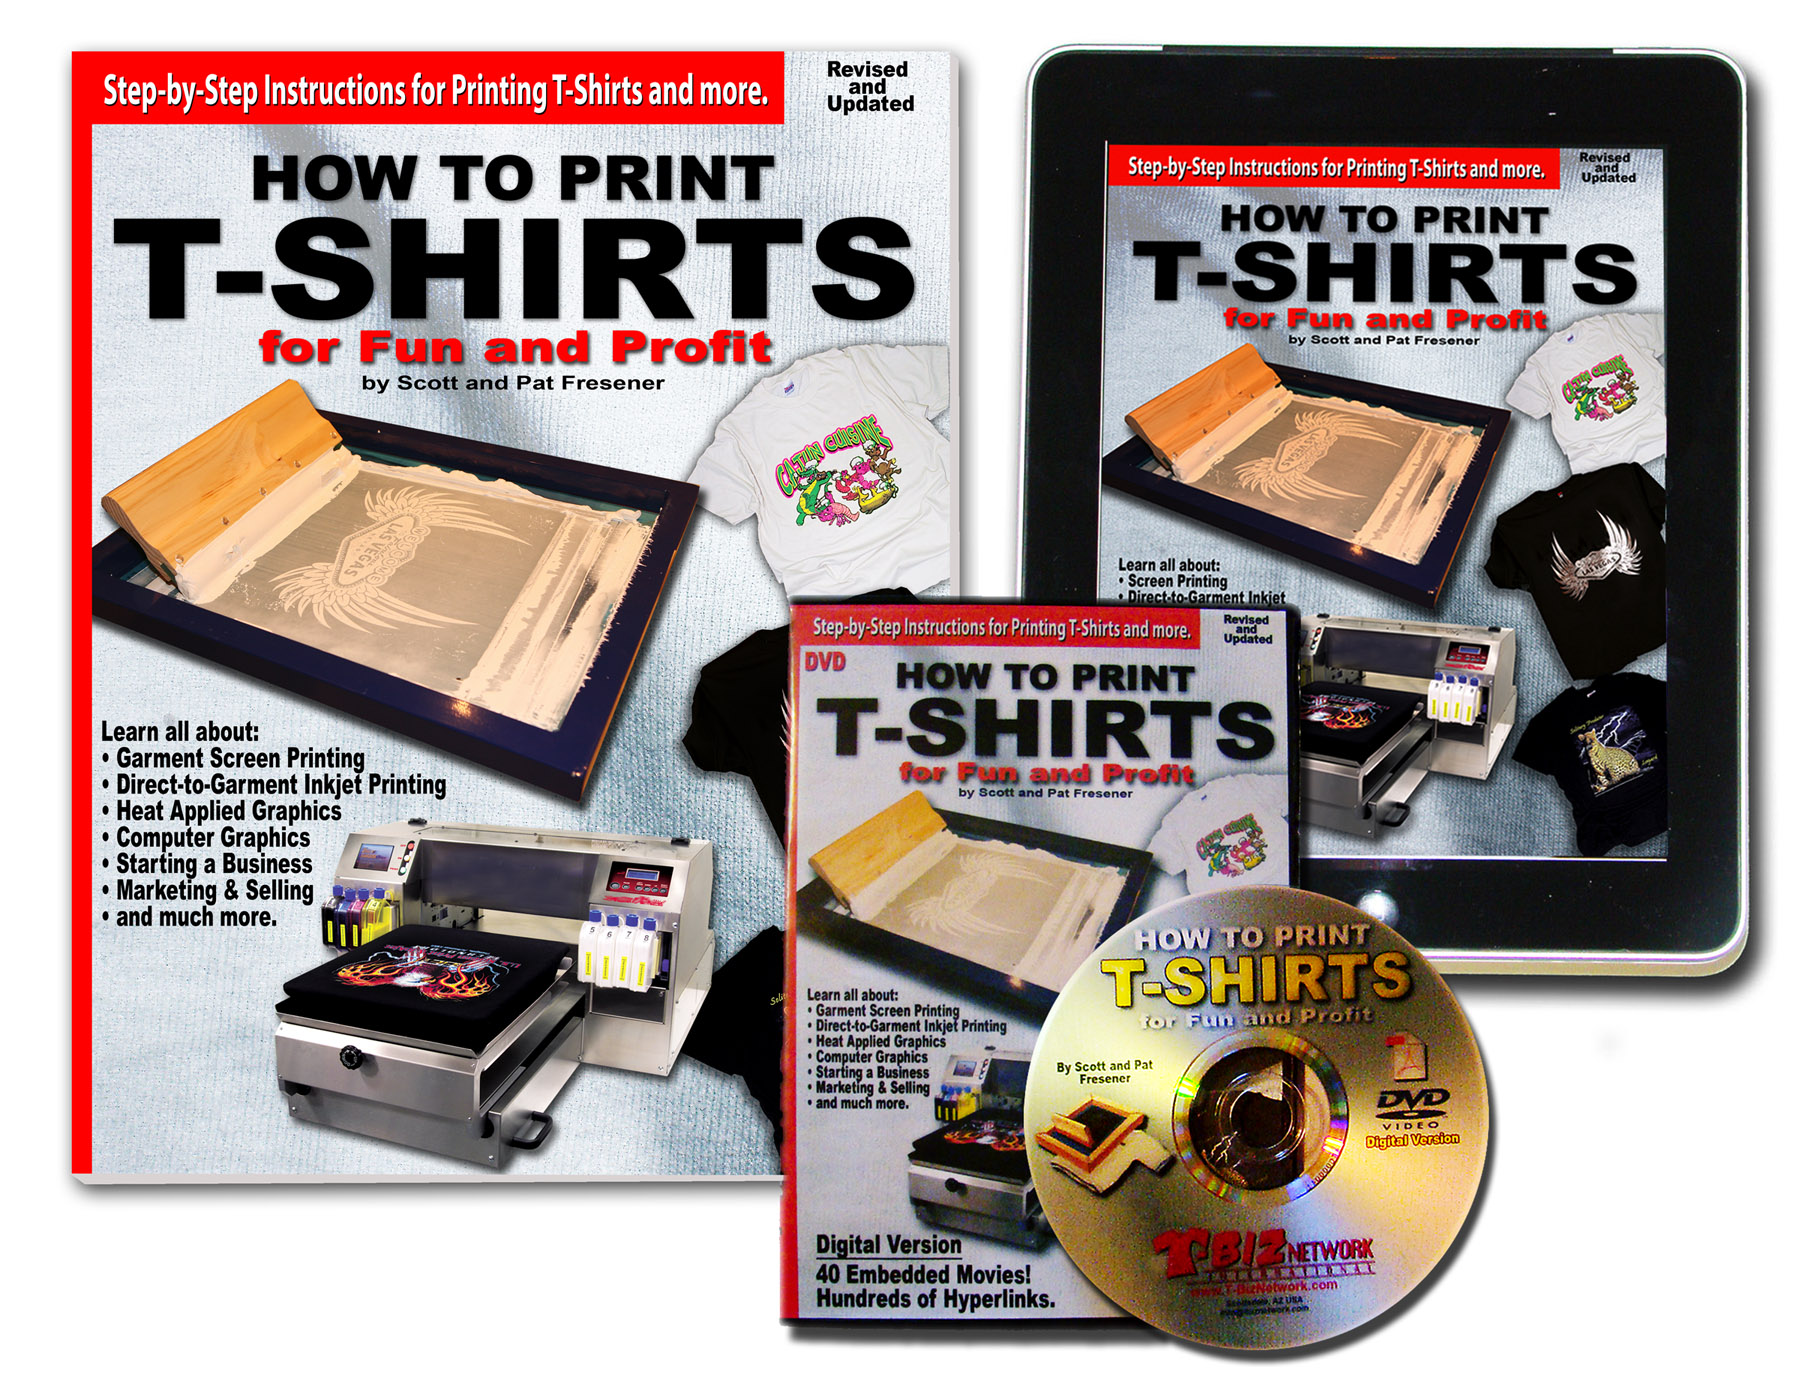 how to print t-shirts for fun and profit |